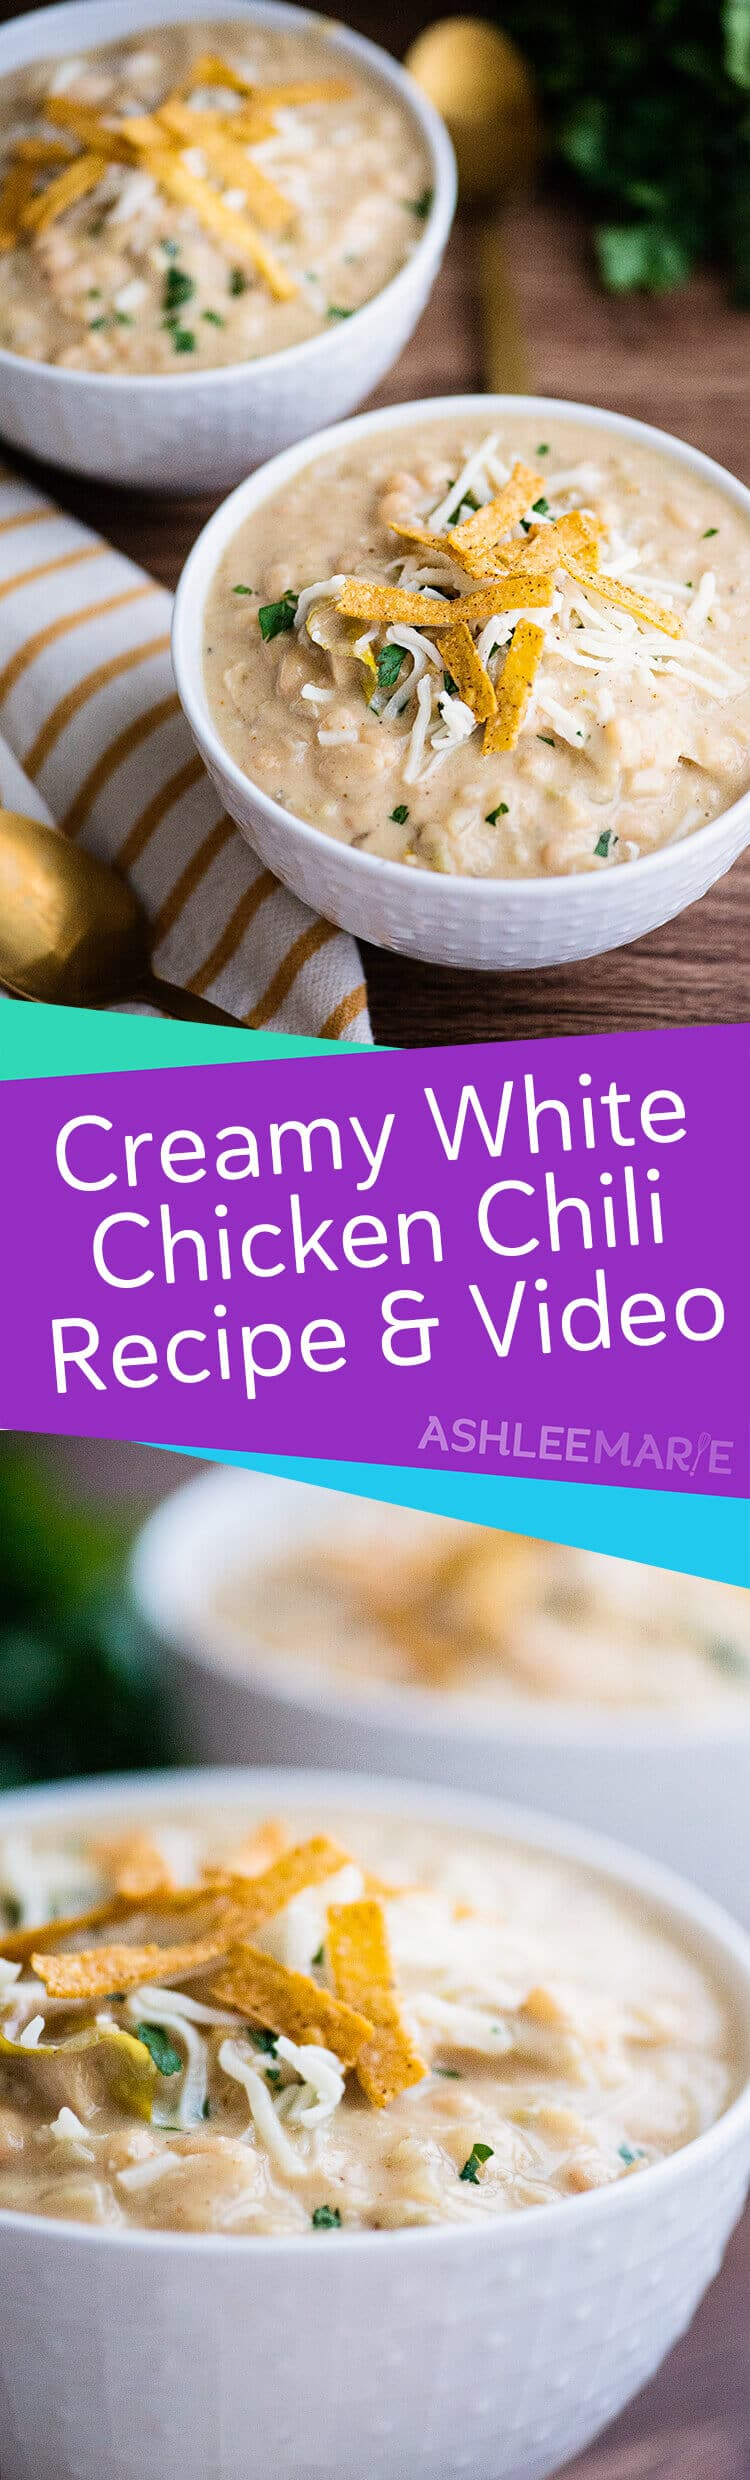 a creamy and spicy white chicken chili recipe with video